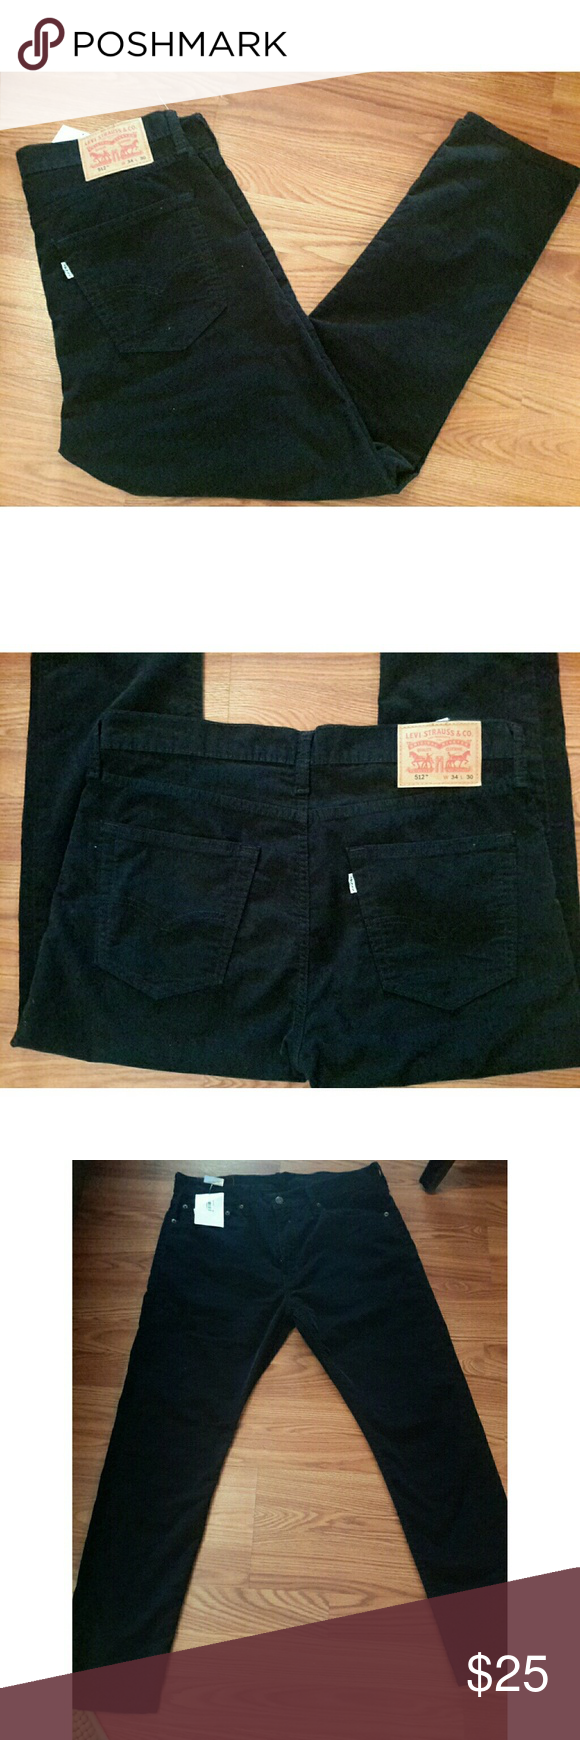 Mens Levis corduroy pants black size 34x30 Up for sell is a? nwt pair of Levi's 512 corduroy jeans. These are size 34 x 30 No tears, or stains. ?brand new !!!! Levi's Pants Corduroy